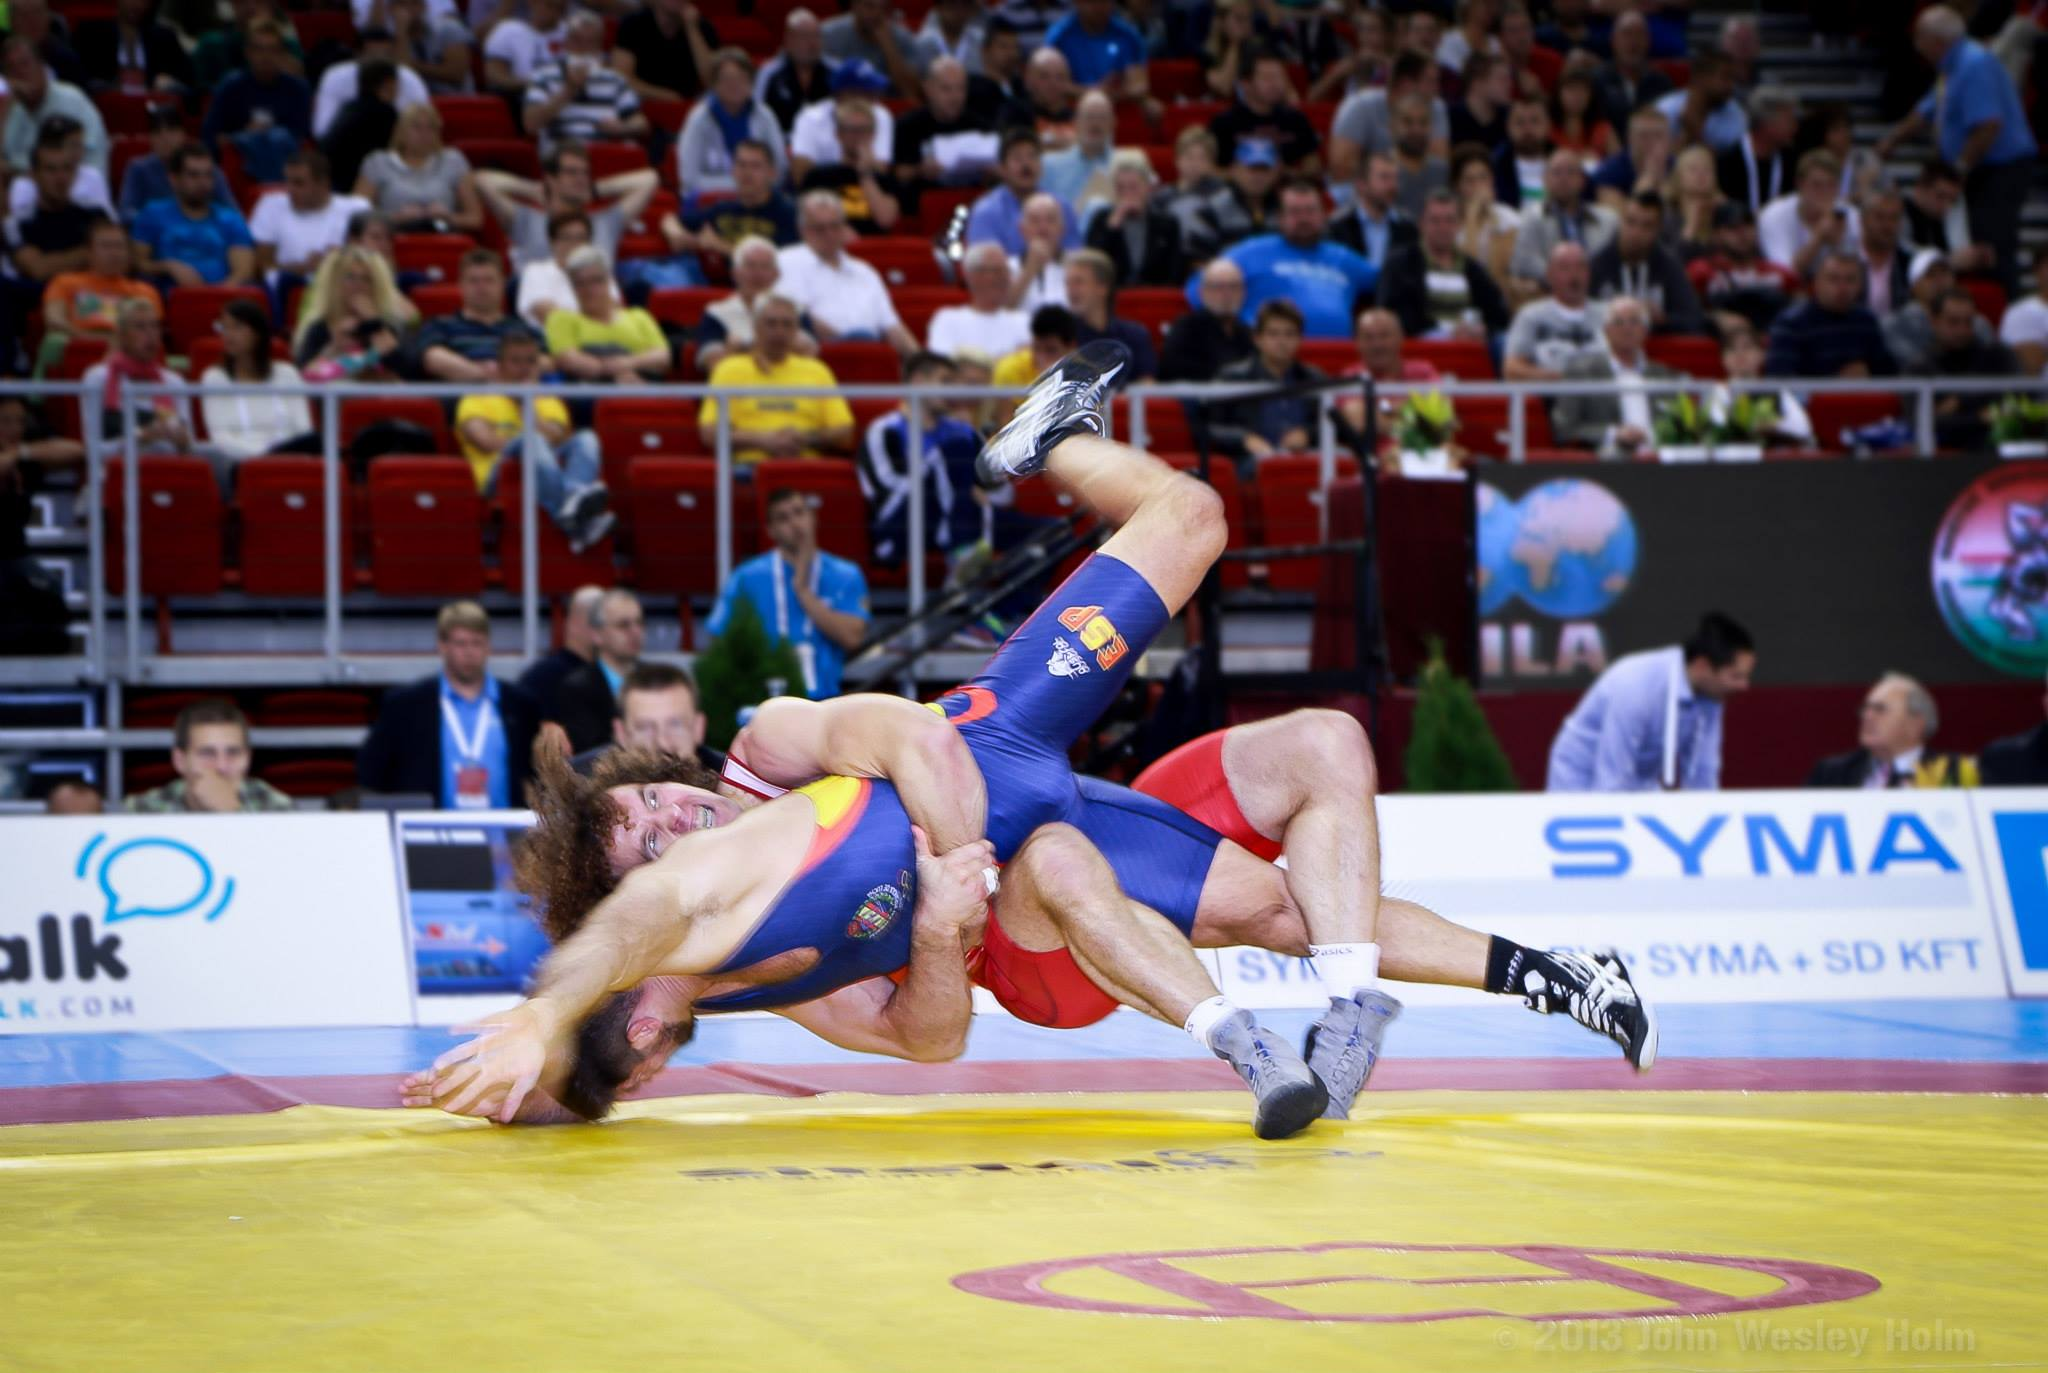 asics russia wrestling team scoring